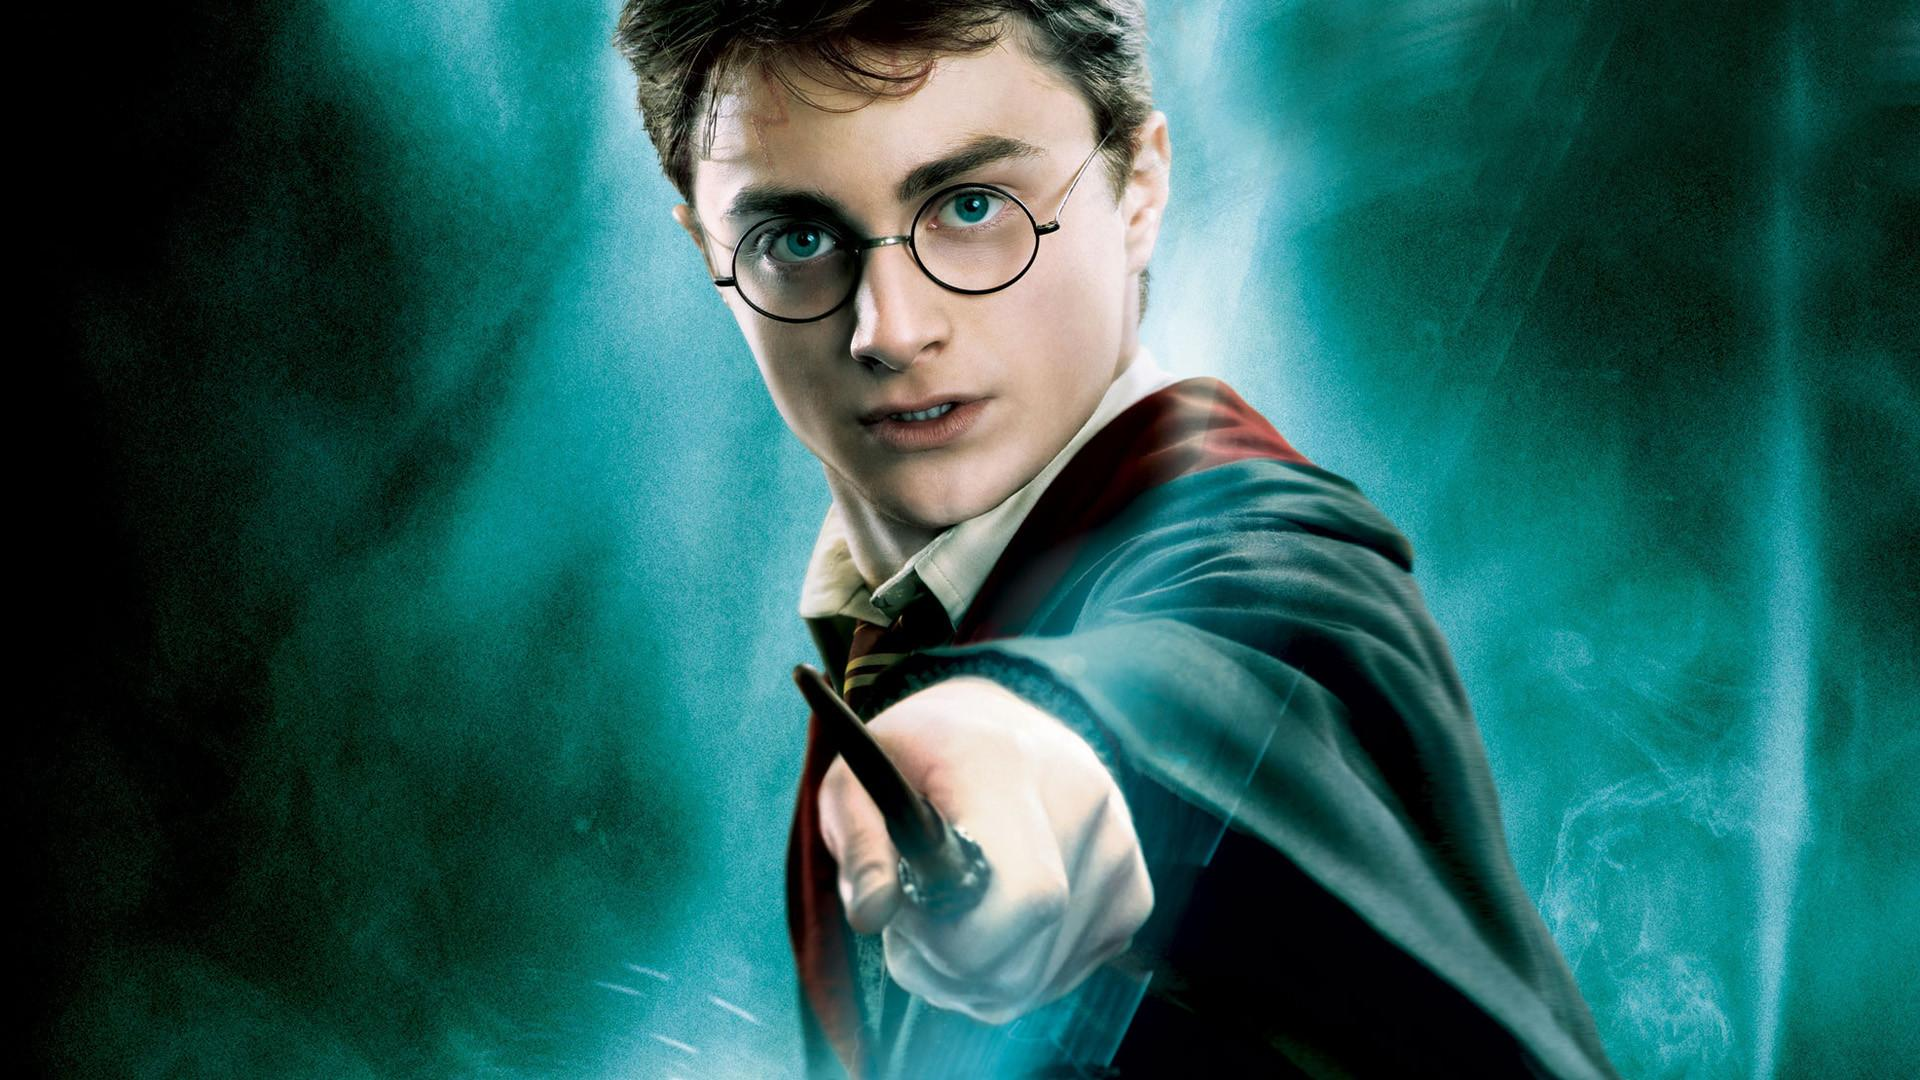 Hd harry potter free wallpapers free download hd wallpaper hd harry potter free wallpapers free download voltagebd Image collections